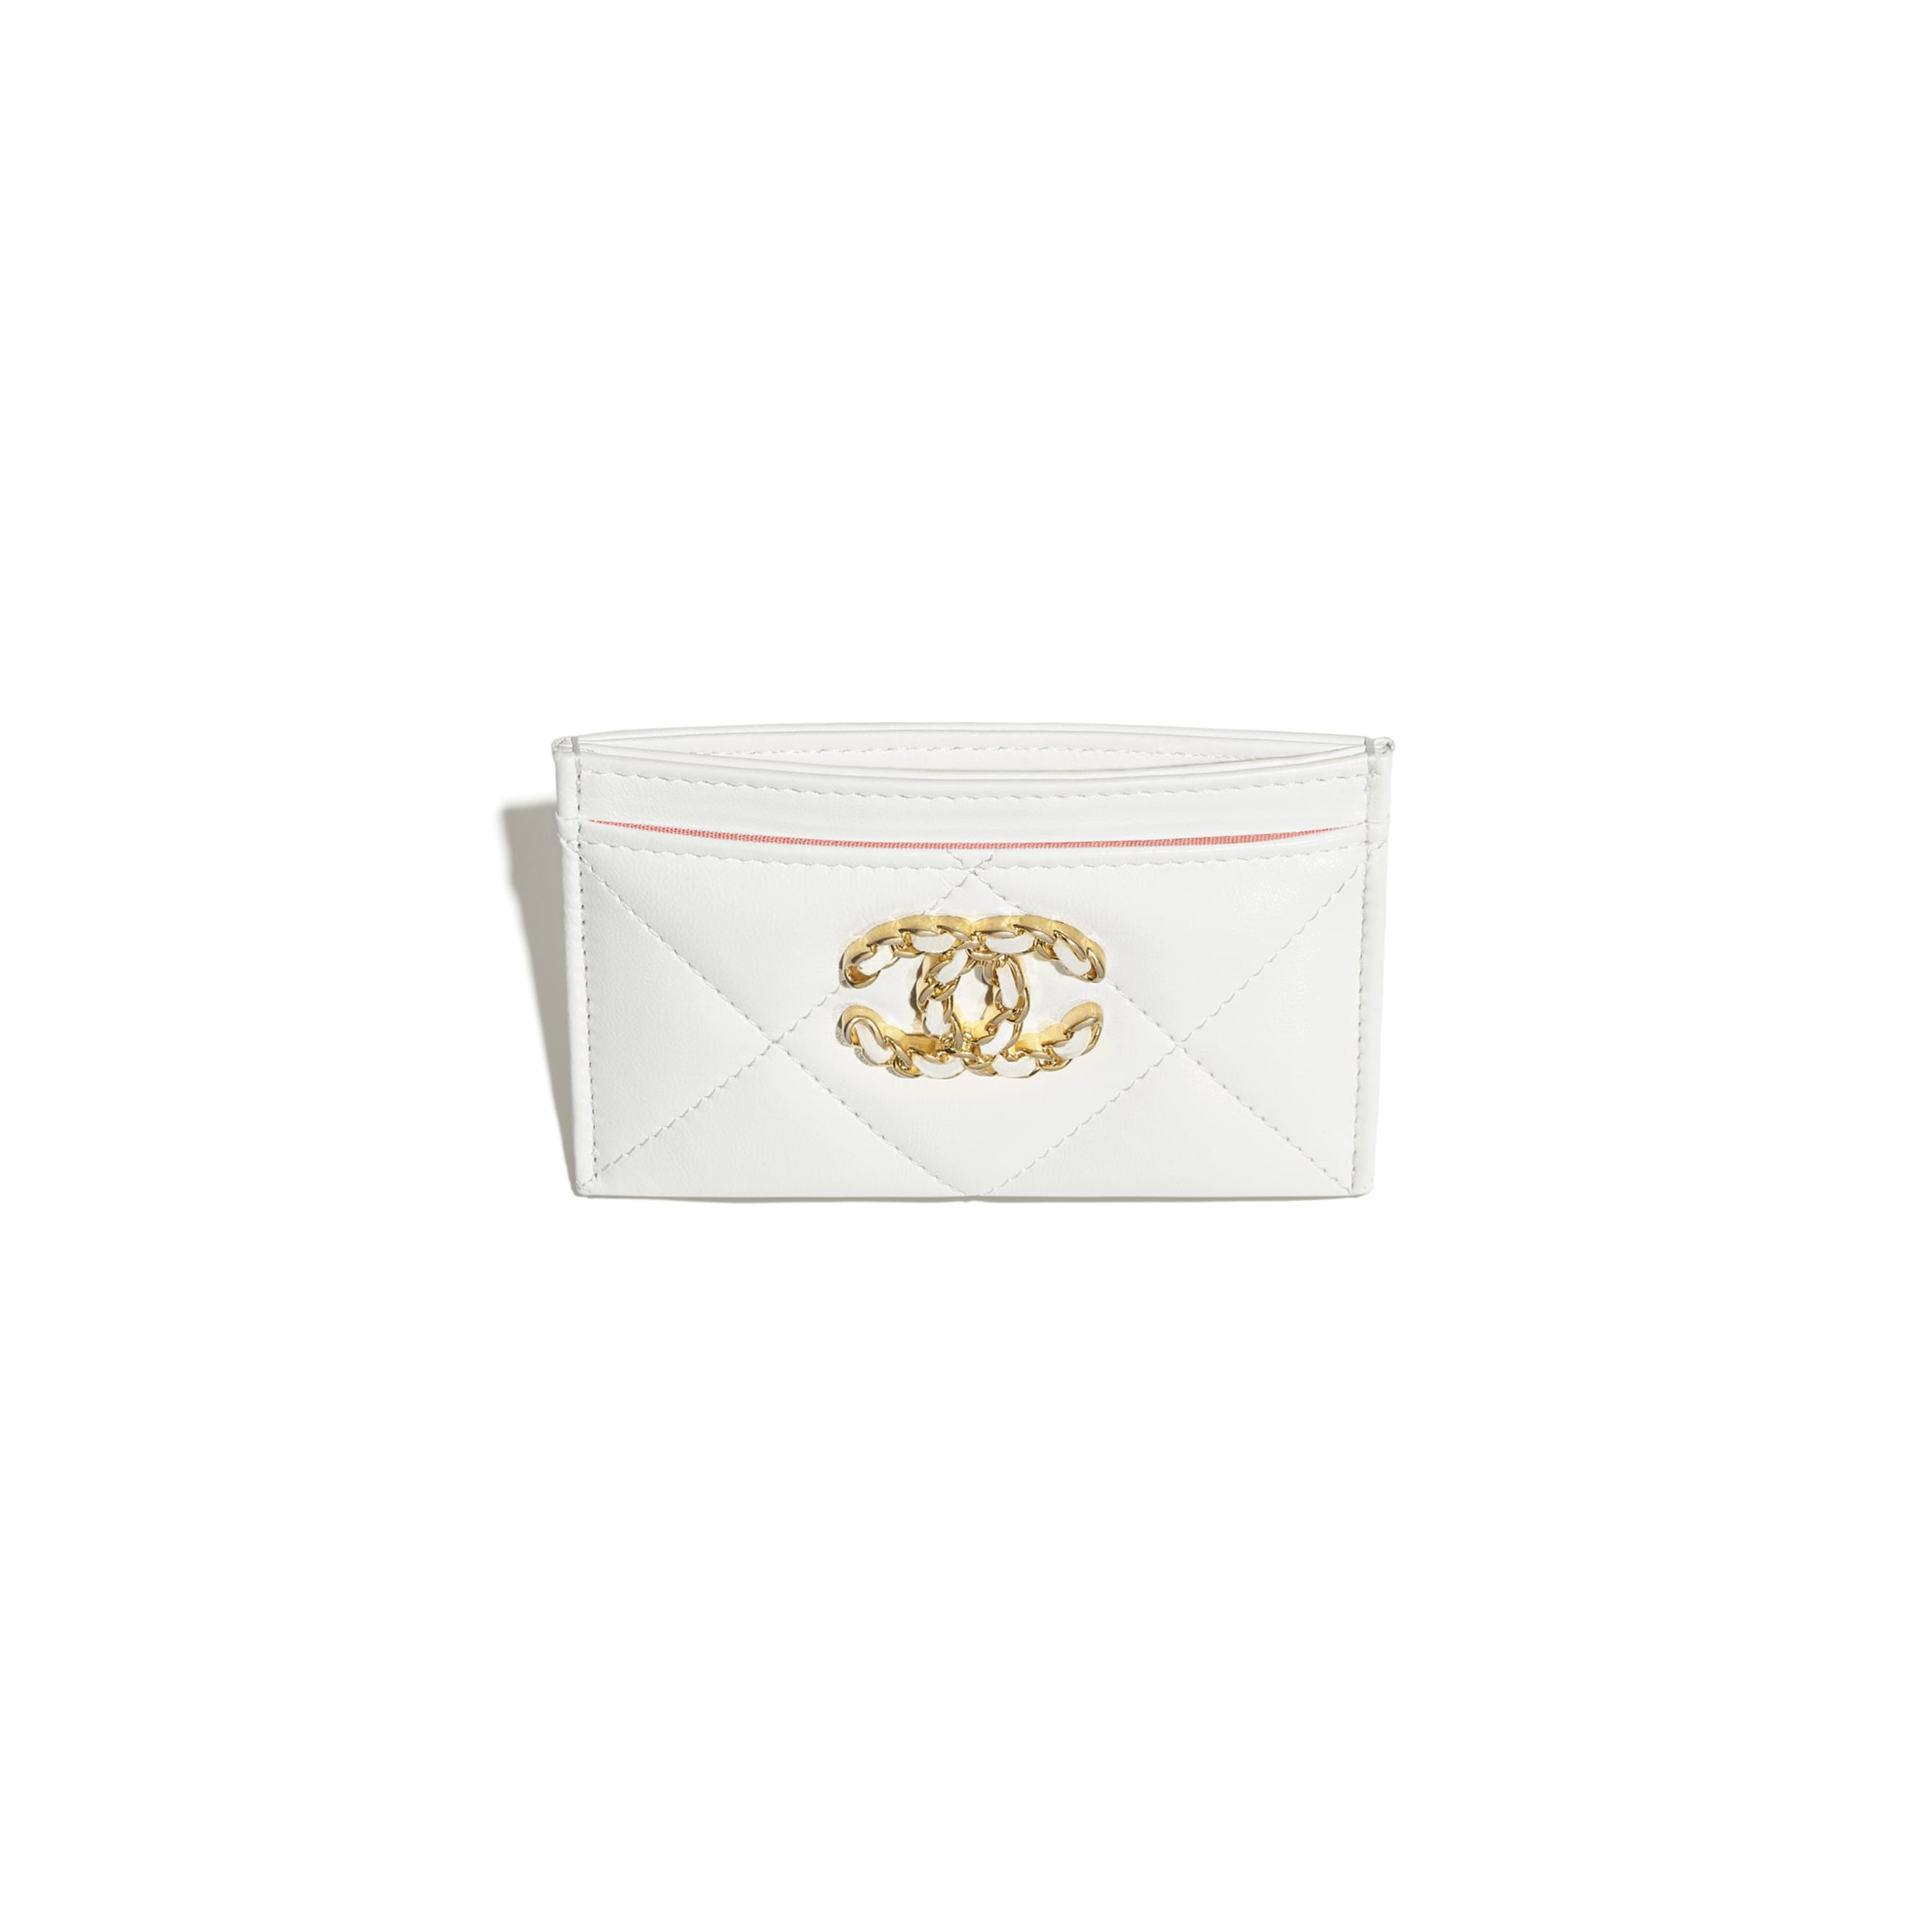 CHANEL 19 Card Holder - White - Lambskin, Gold-Tone, Silver-Tone & Ruthenium-Finish Metal - CHANEL - Other view - see standard sized version